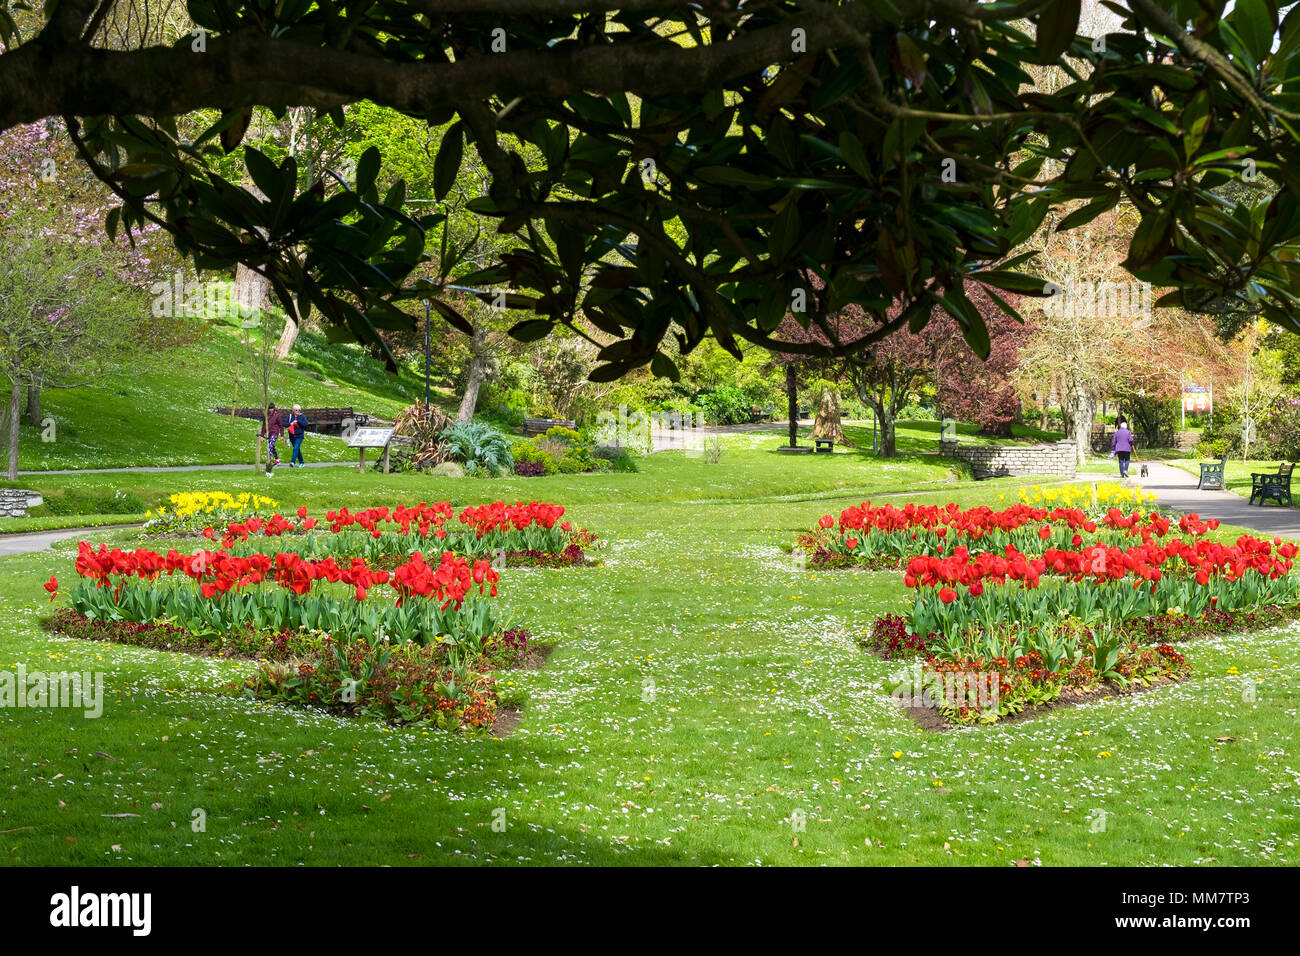 Flower beds in Trenance Park in Newquay Cornwall. - Stock Image